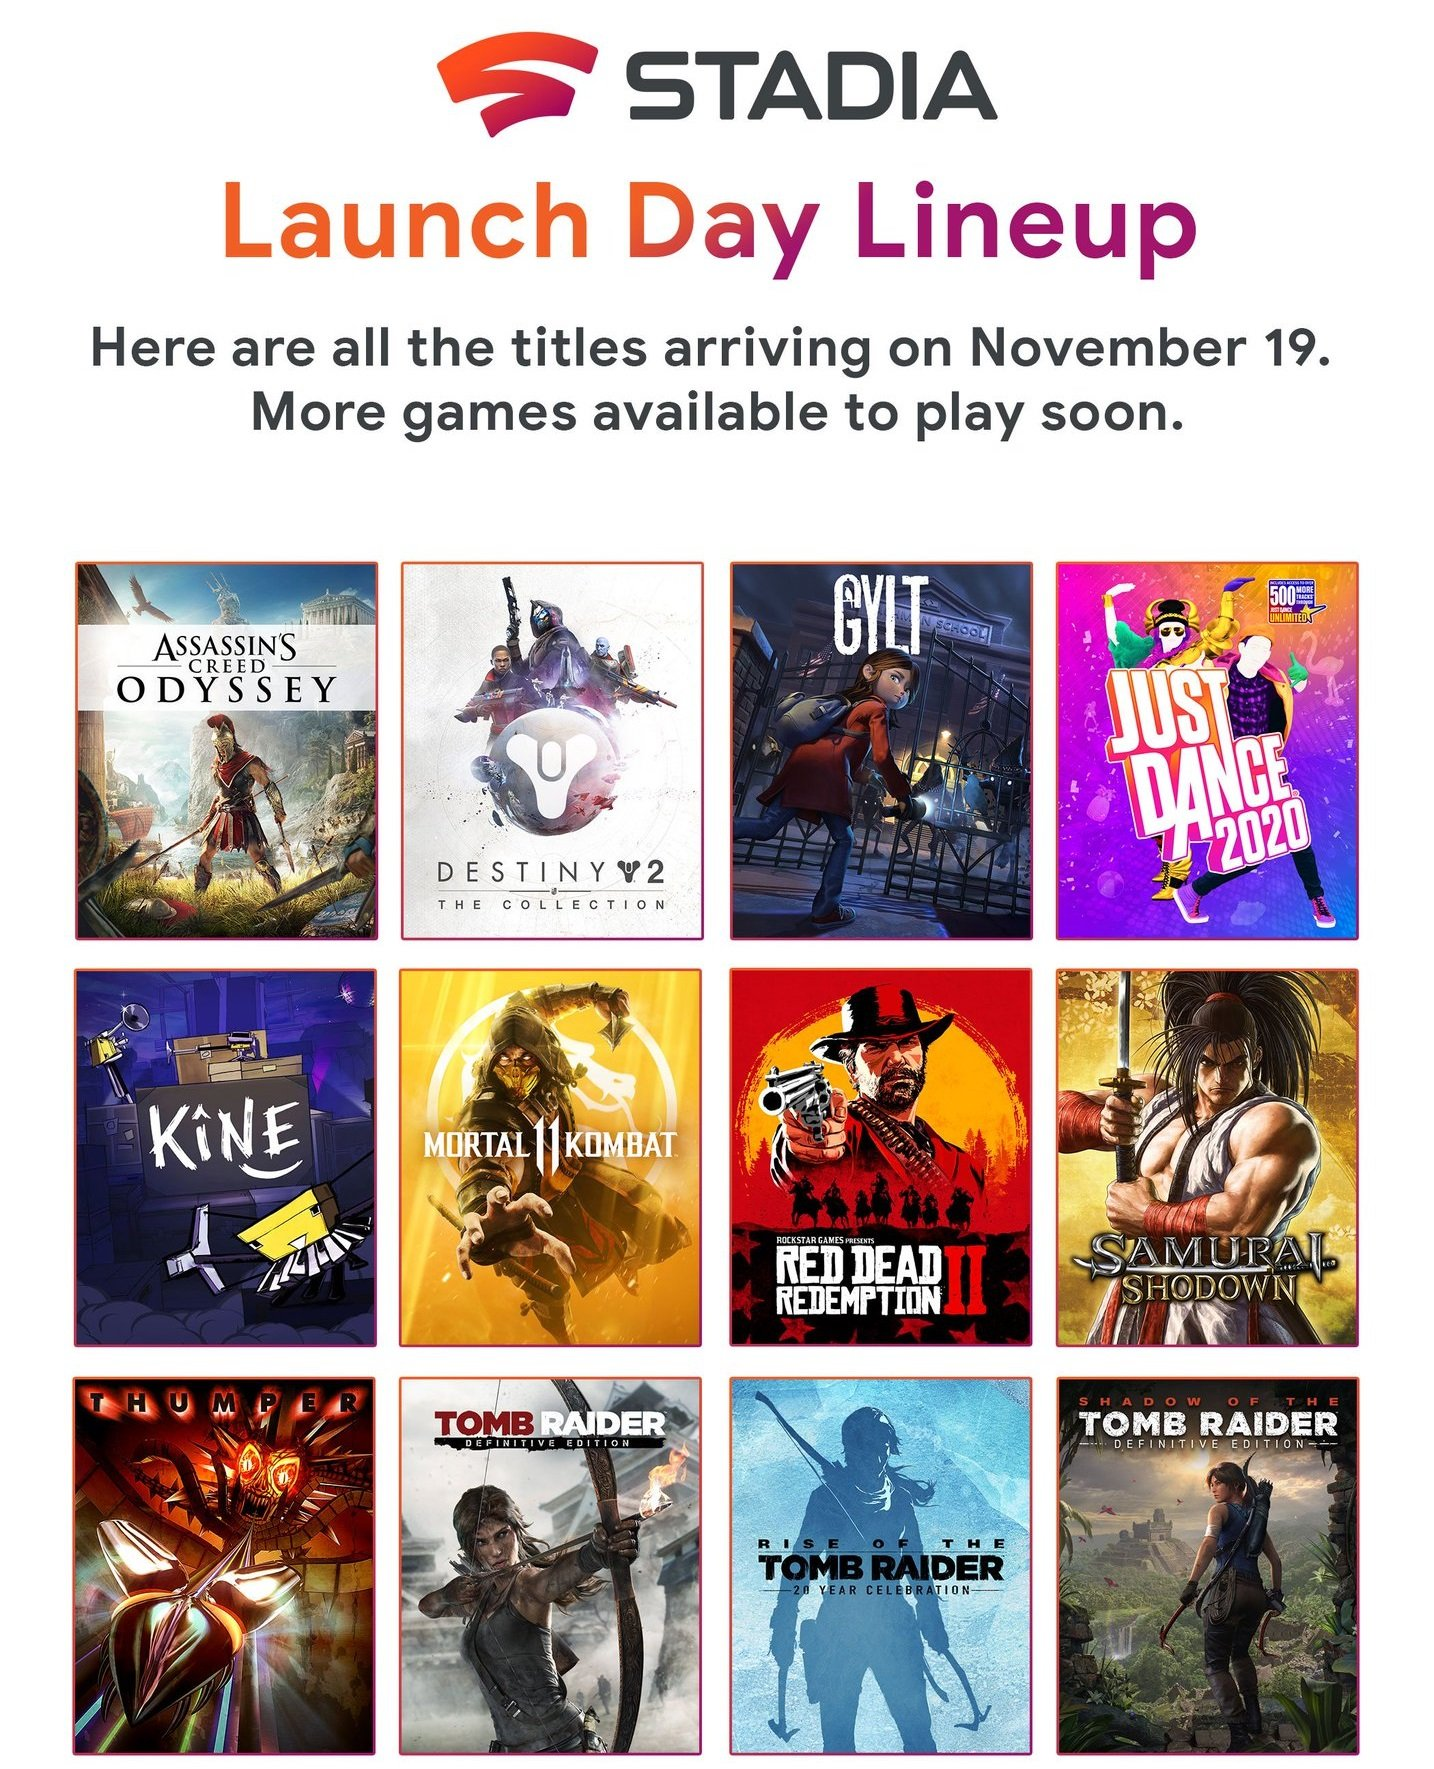 google-stadia-list-of-games-at-launch2418702709616428729.jpg